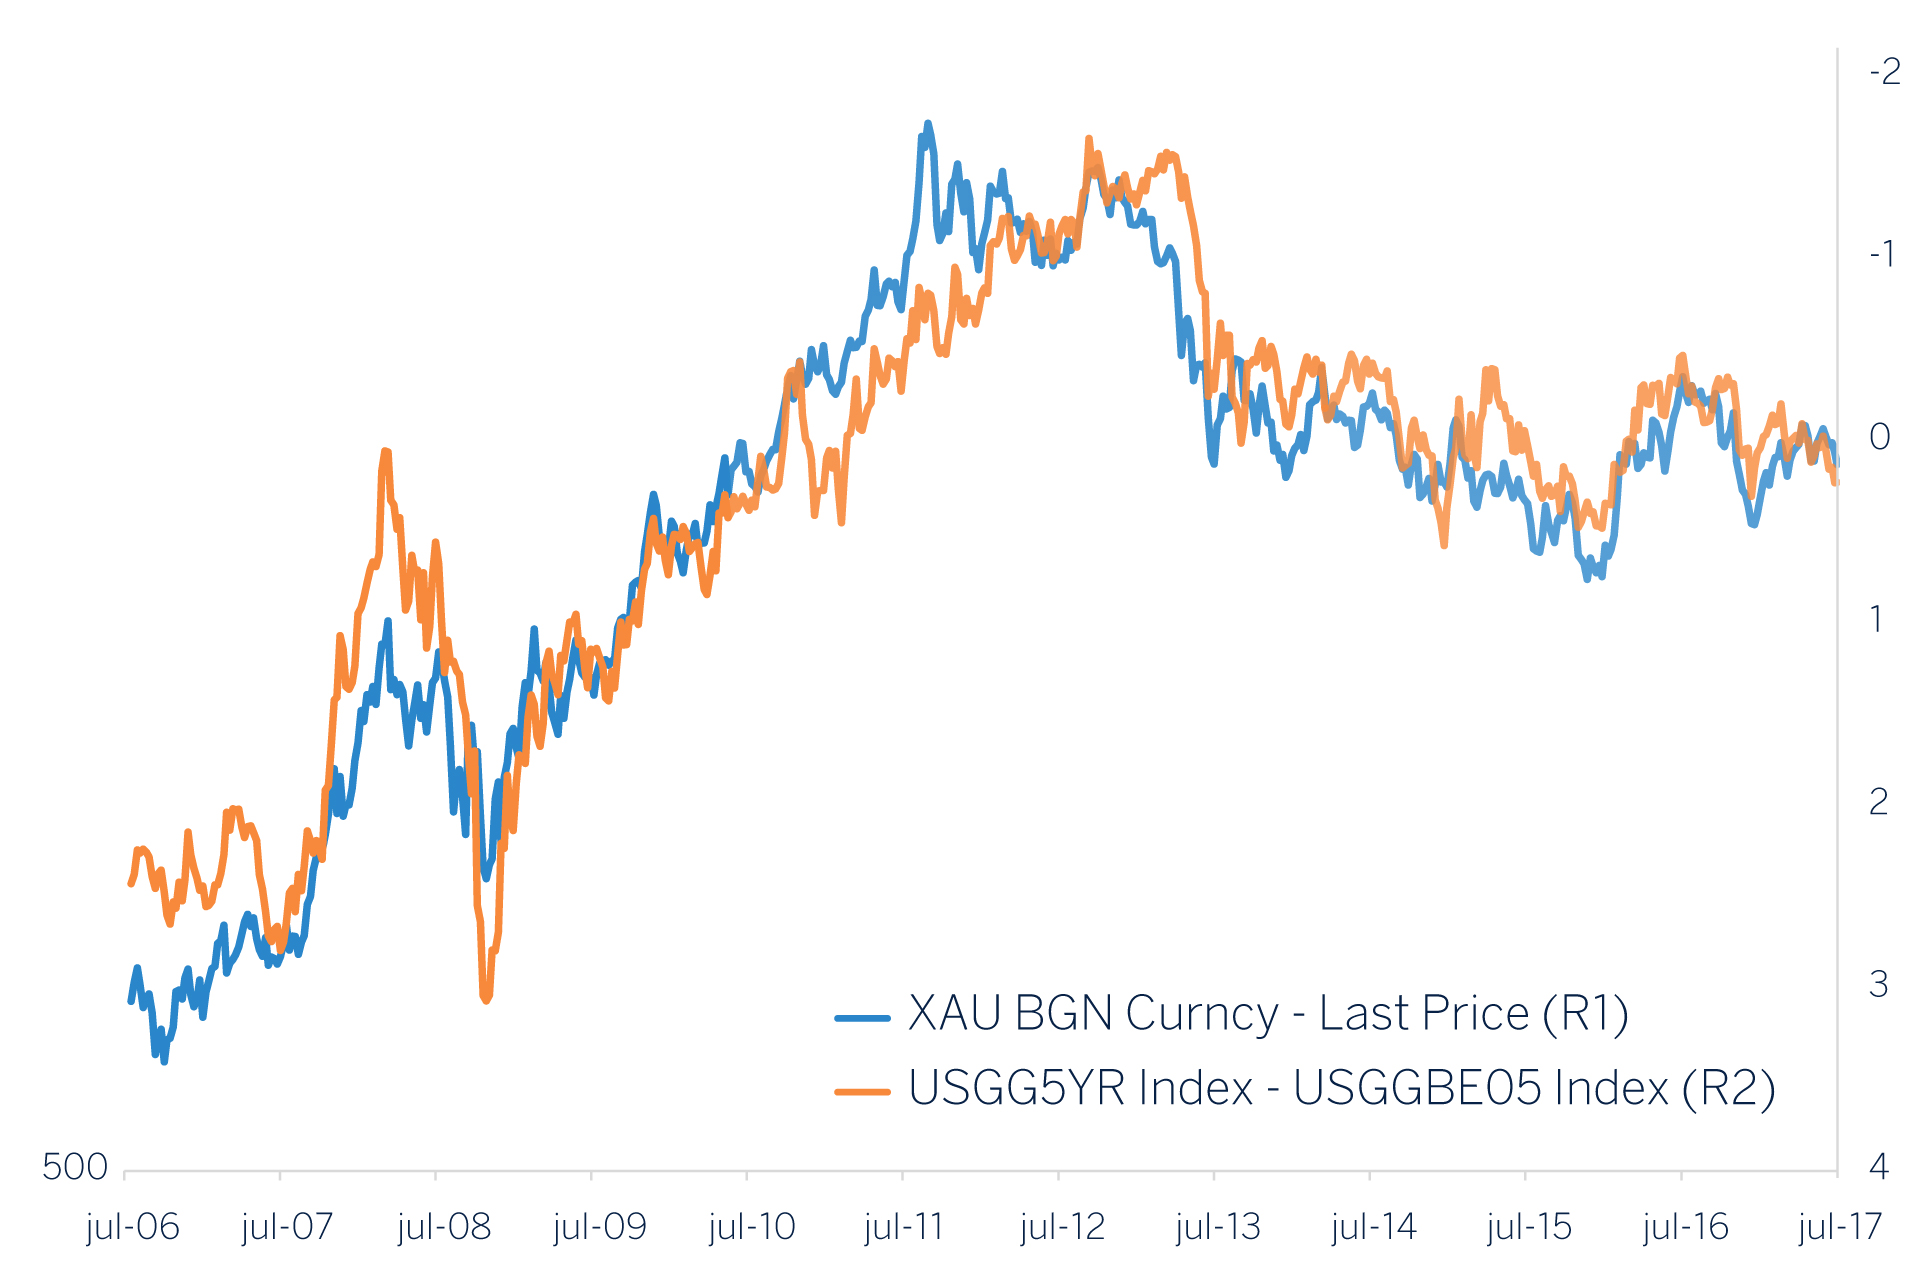 Real Interest Rates In Orange Turn Are Moving Almost On A Par With Nominal Blue However Their Performance Begins To Differ And Even